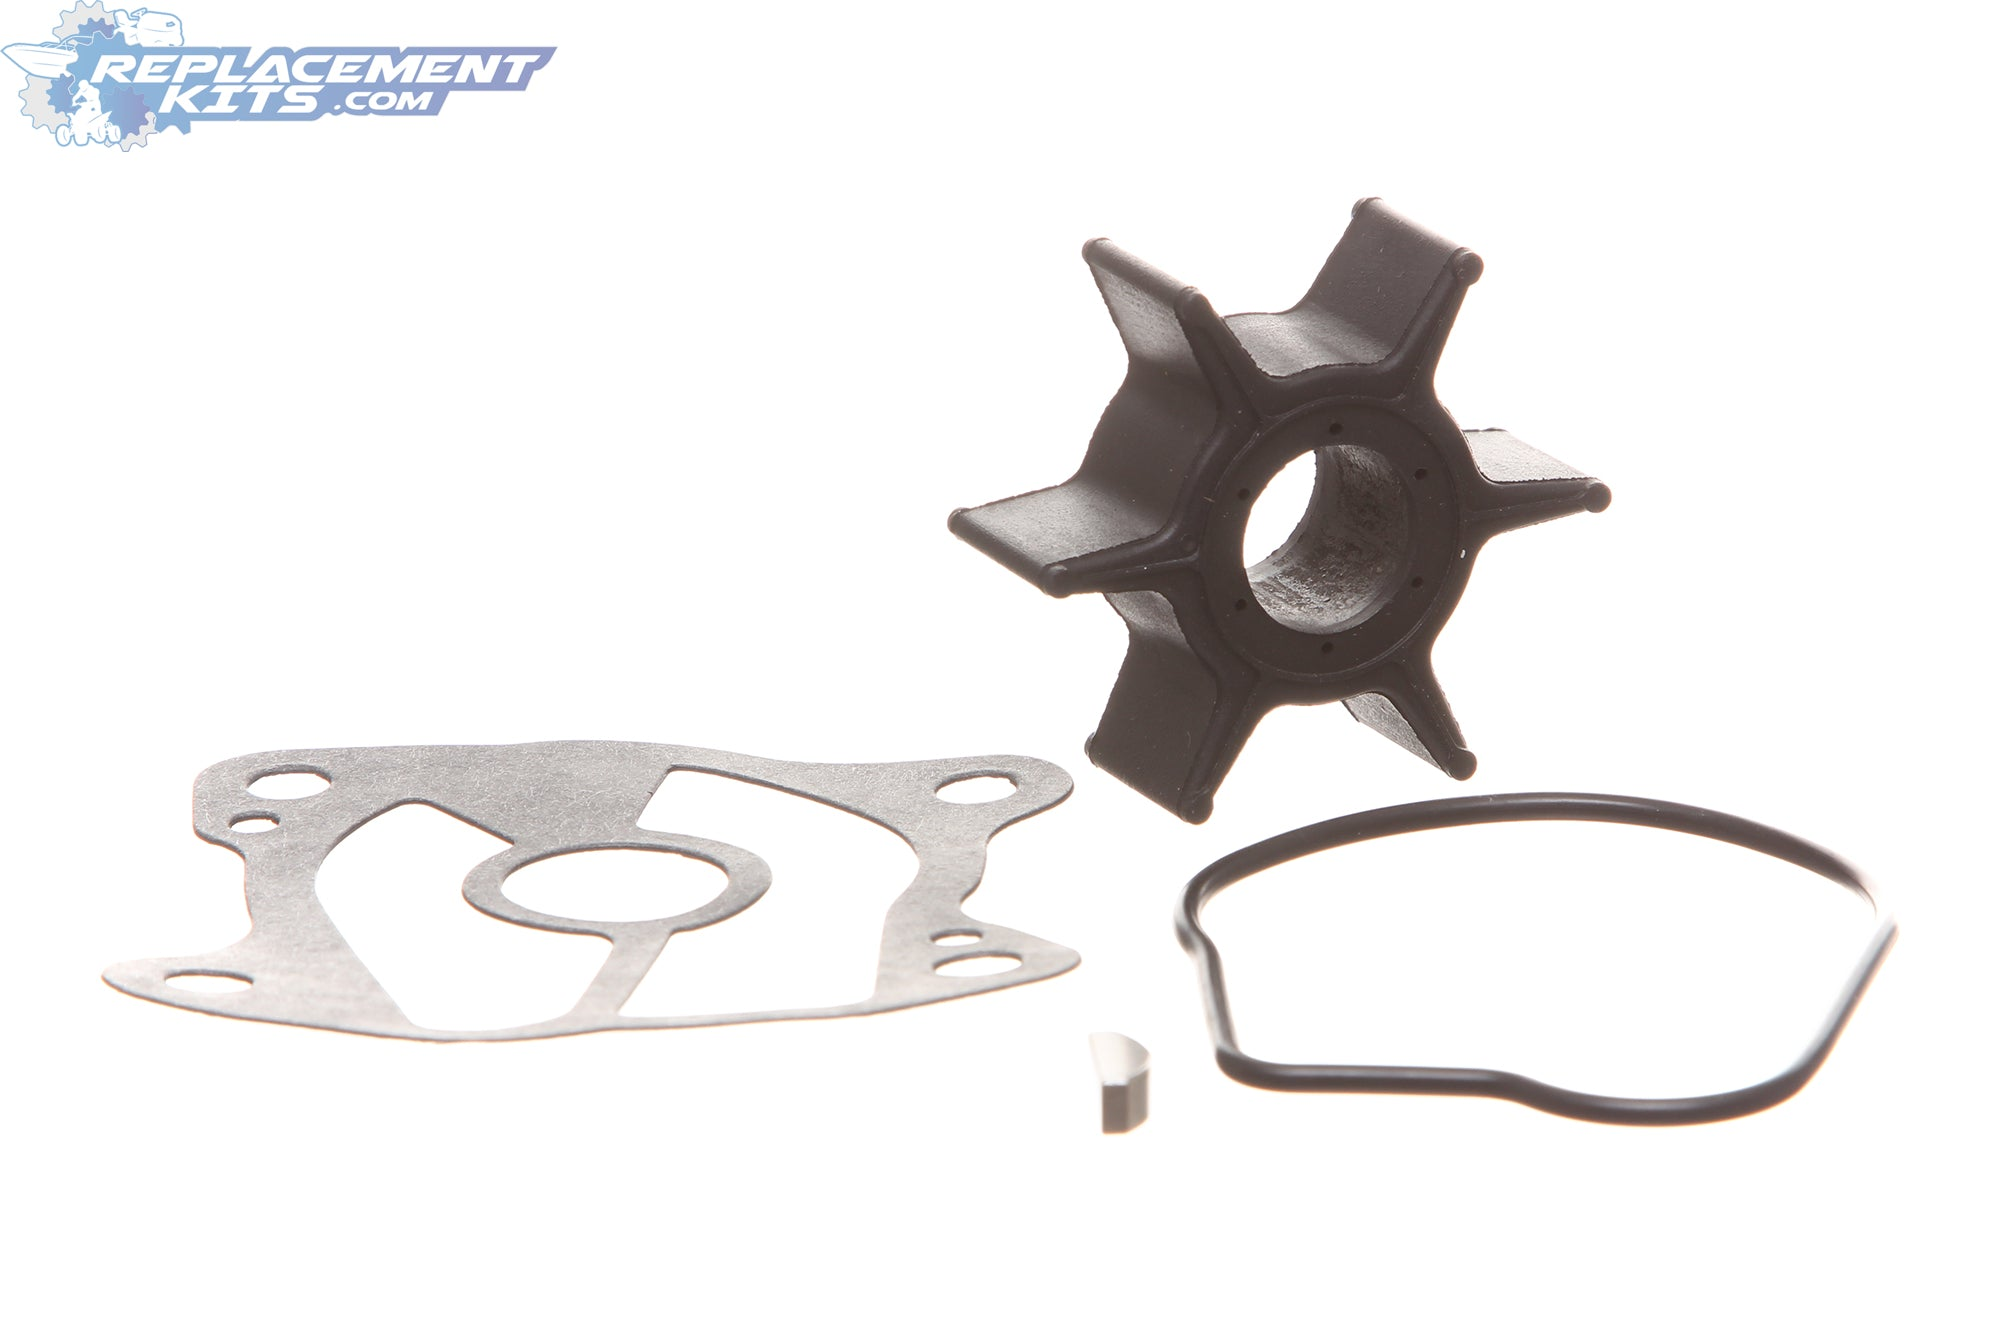 Outboard water pump impeller 19210-ZV7-003 replacement for HONDA marine